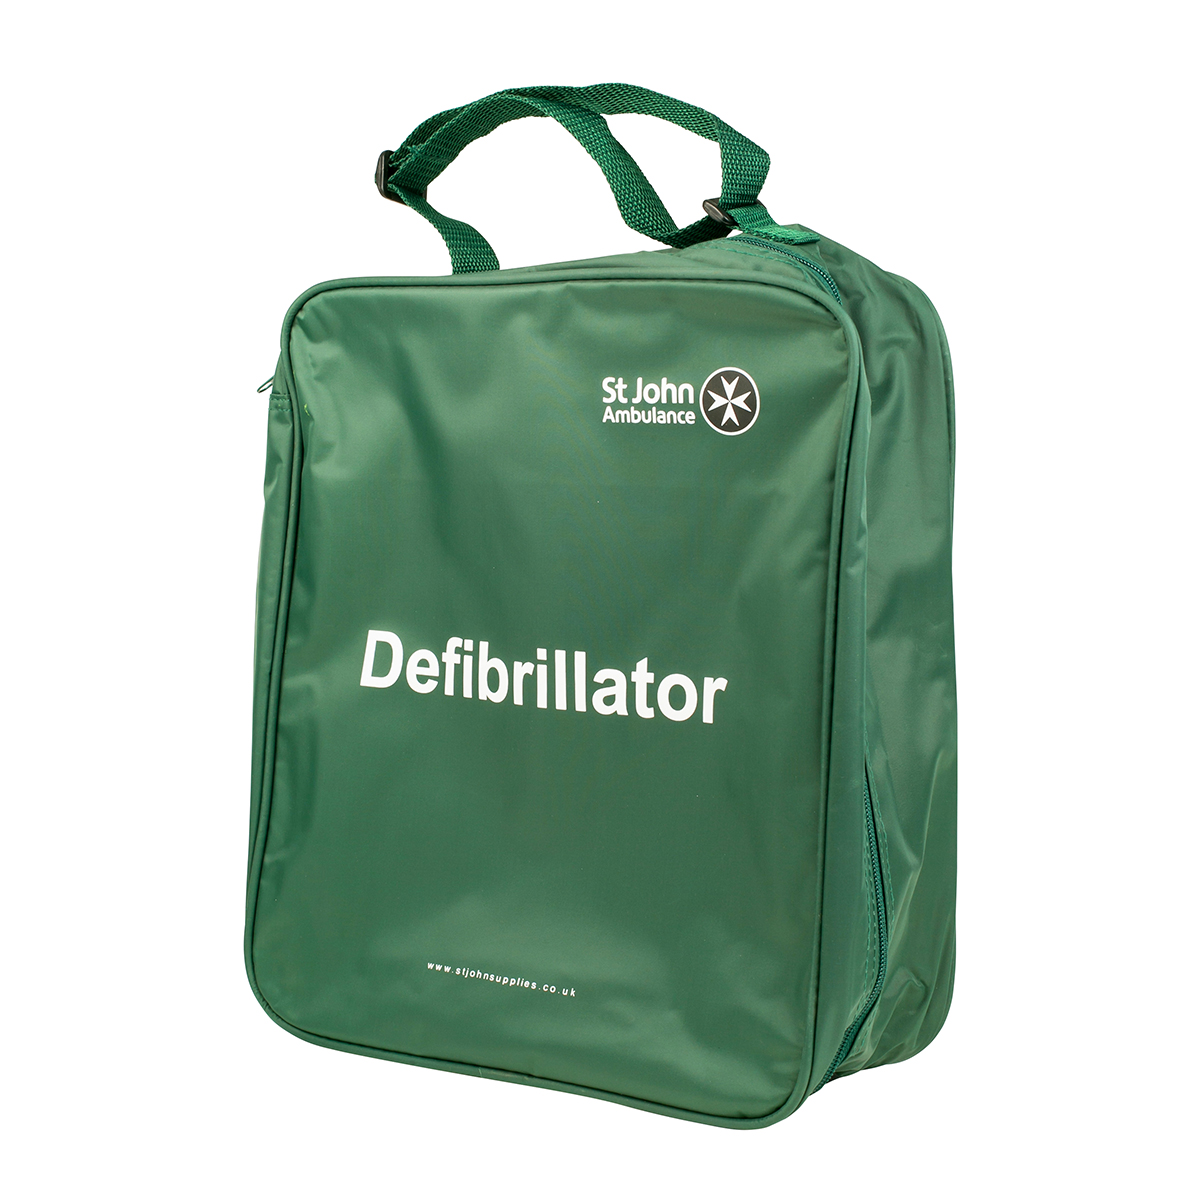 Soft Carry Case for Zoll® Defibrillators